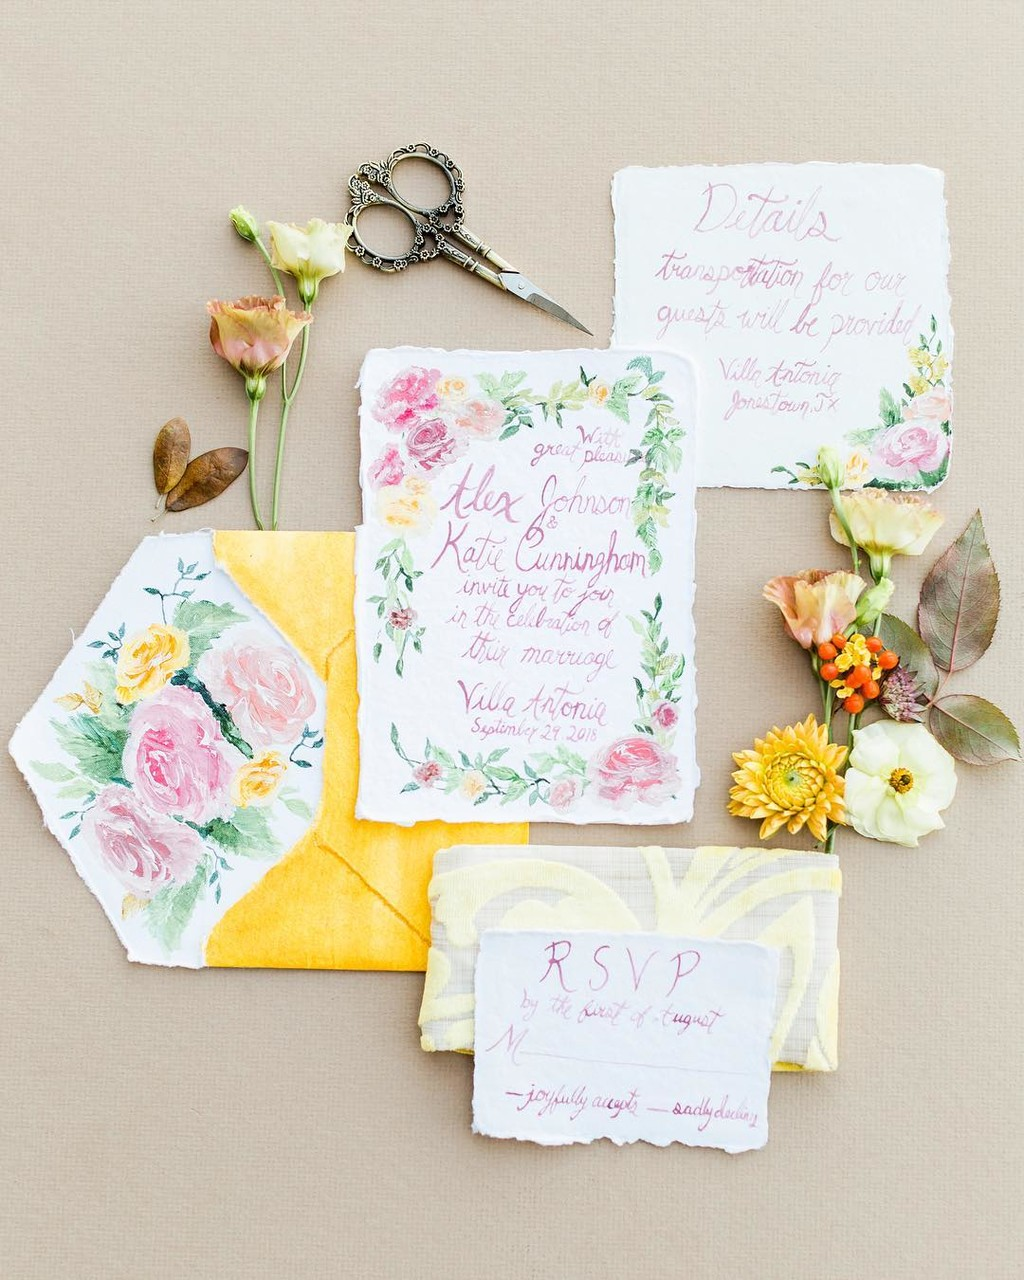 If you want a beautifully styled invitation suite, but can't afford sending it to all of your guests, ask a calligrapher or someone